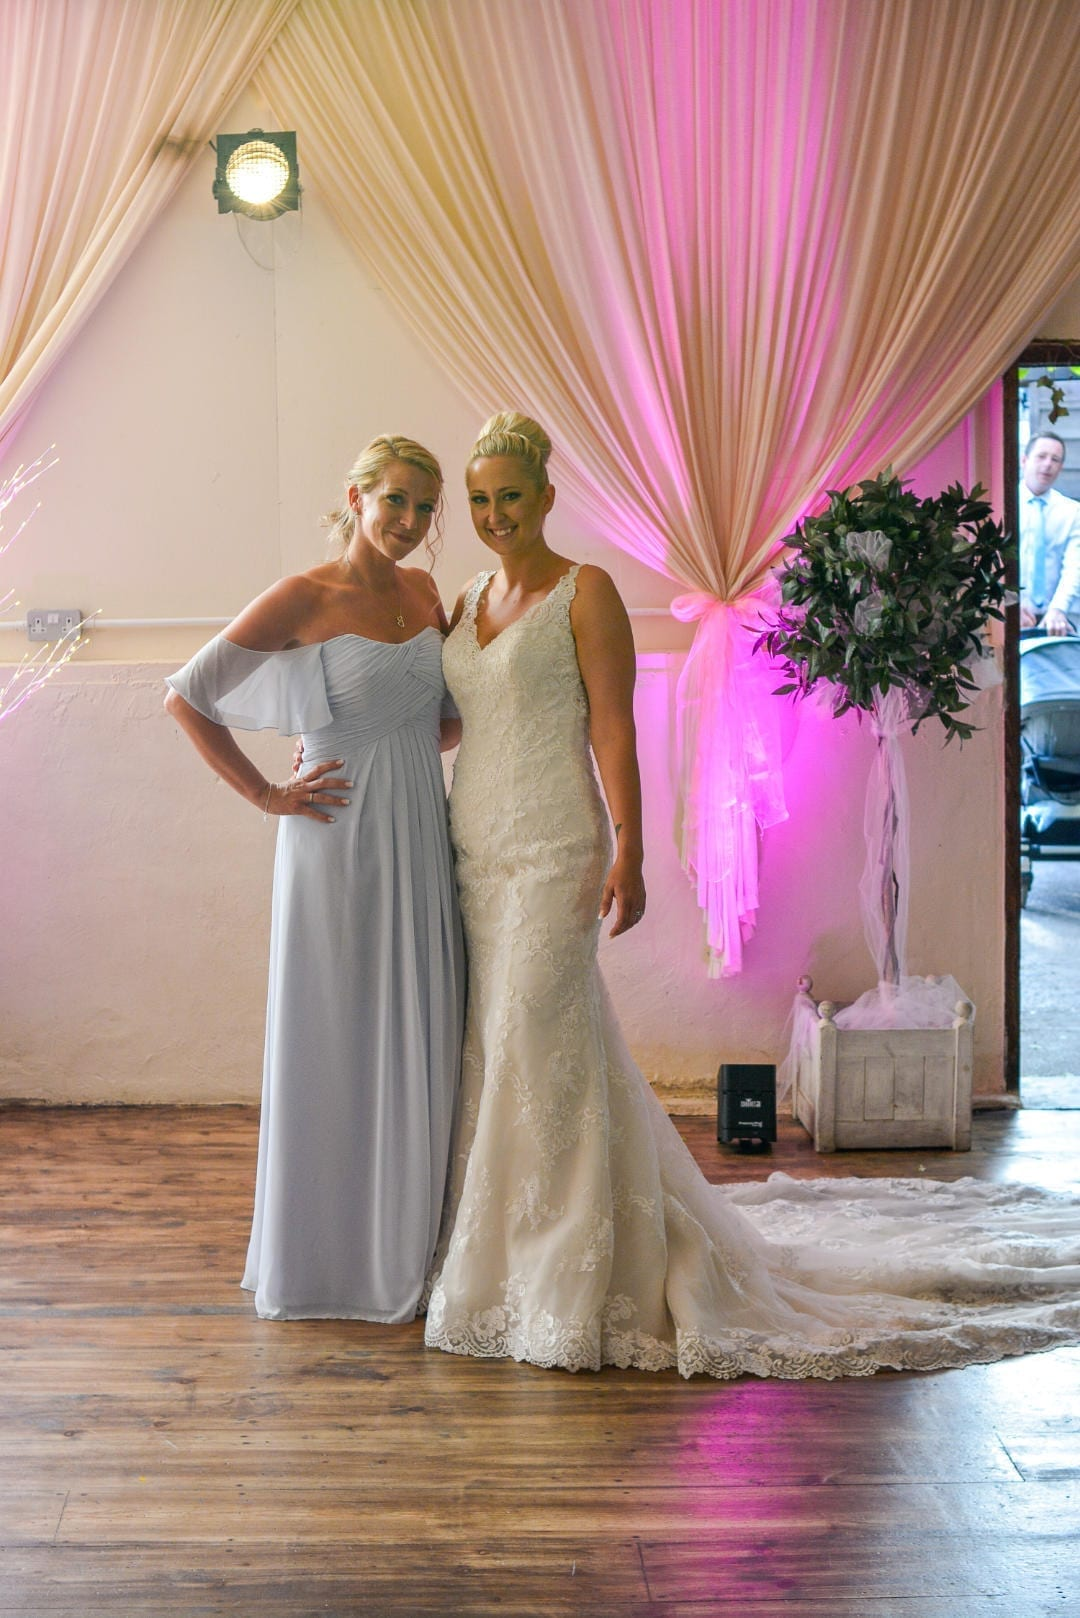 Specialist-Wedding-Makeup-Artist-Makeup-By-Mirna2